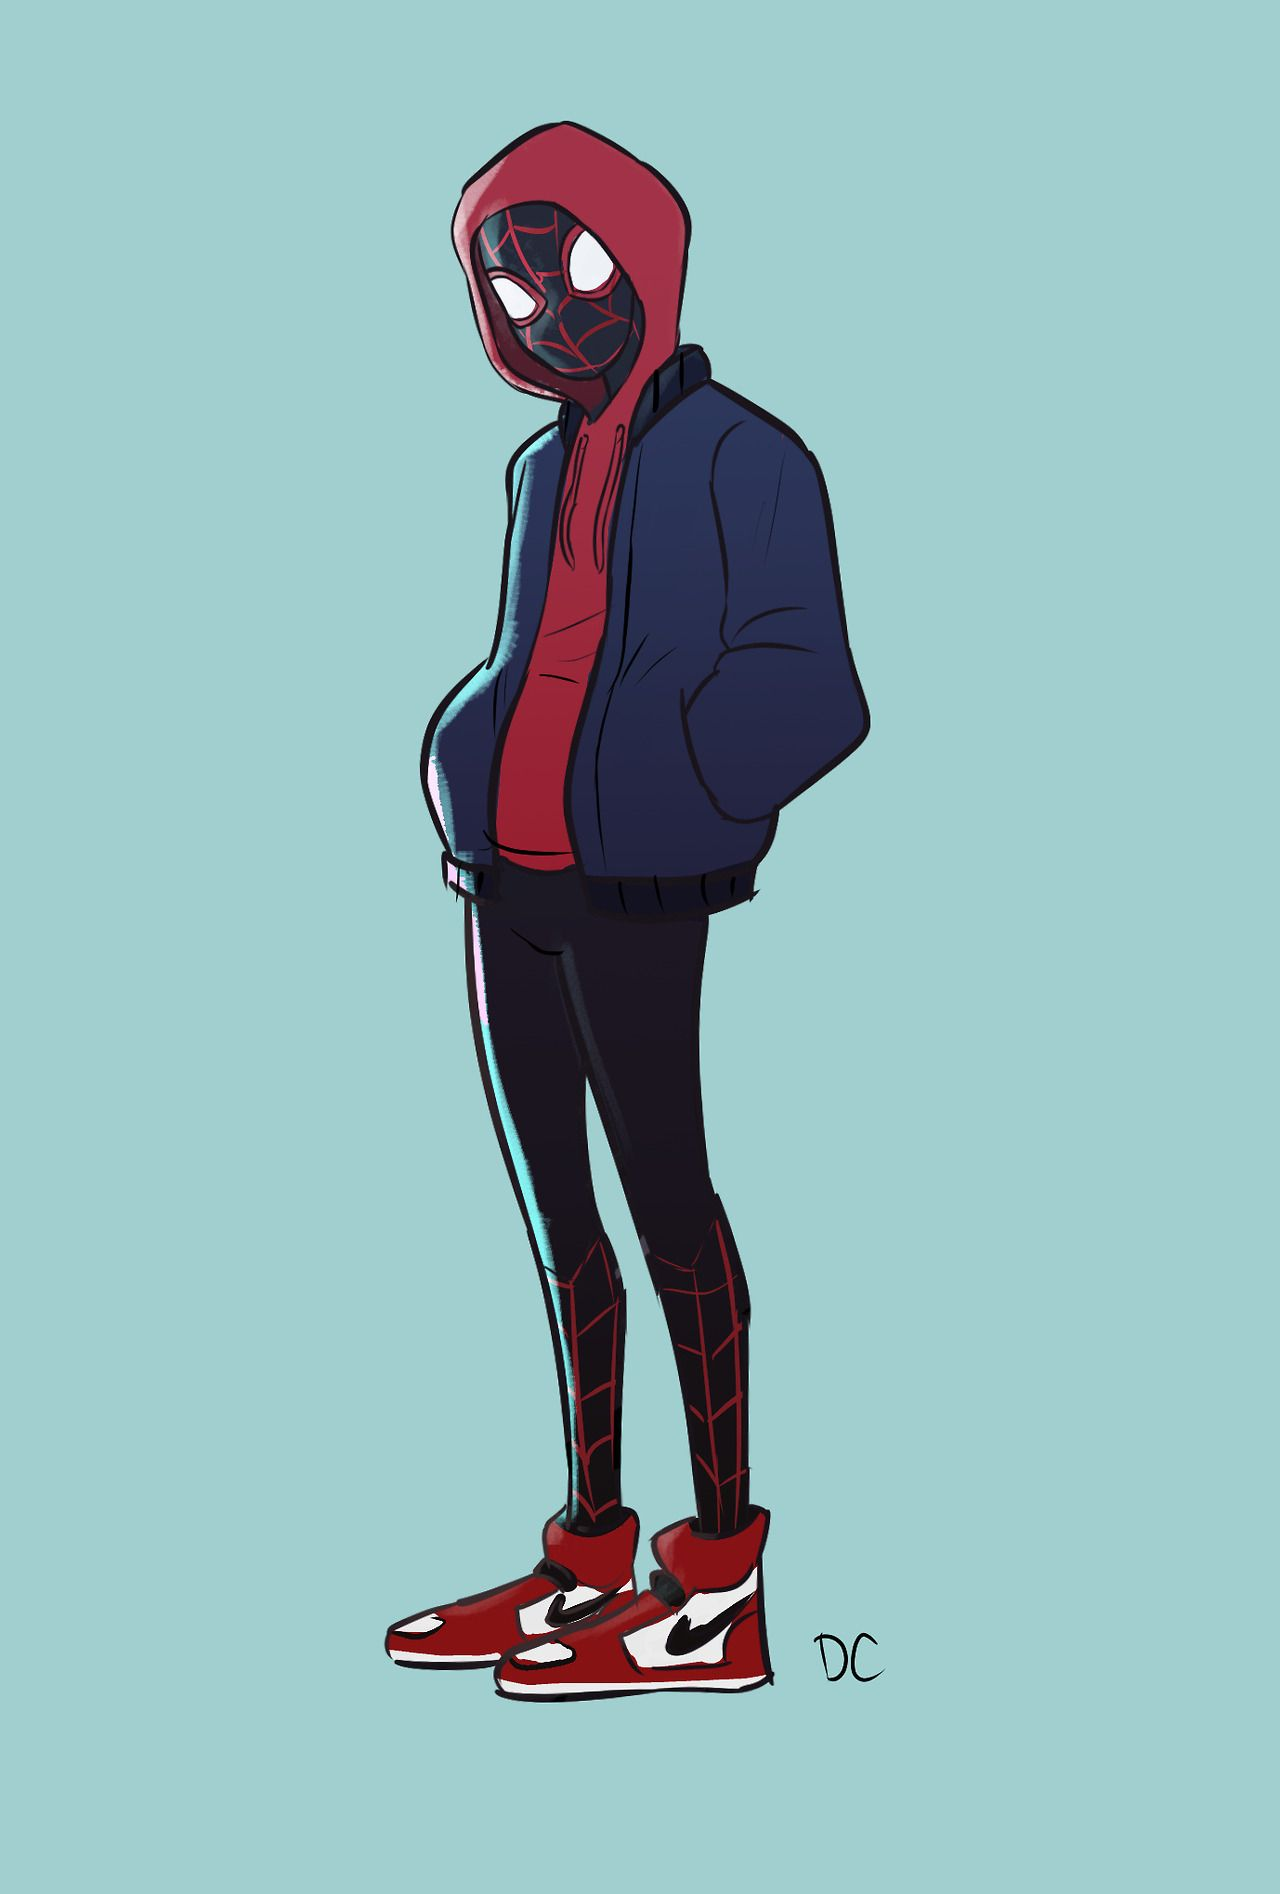 quick little miles morales drawing between working on stuff for